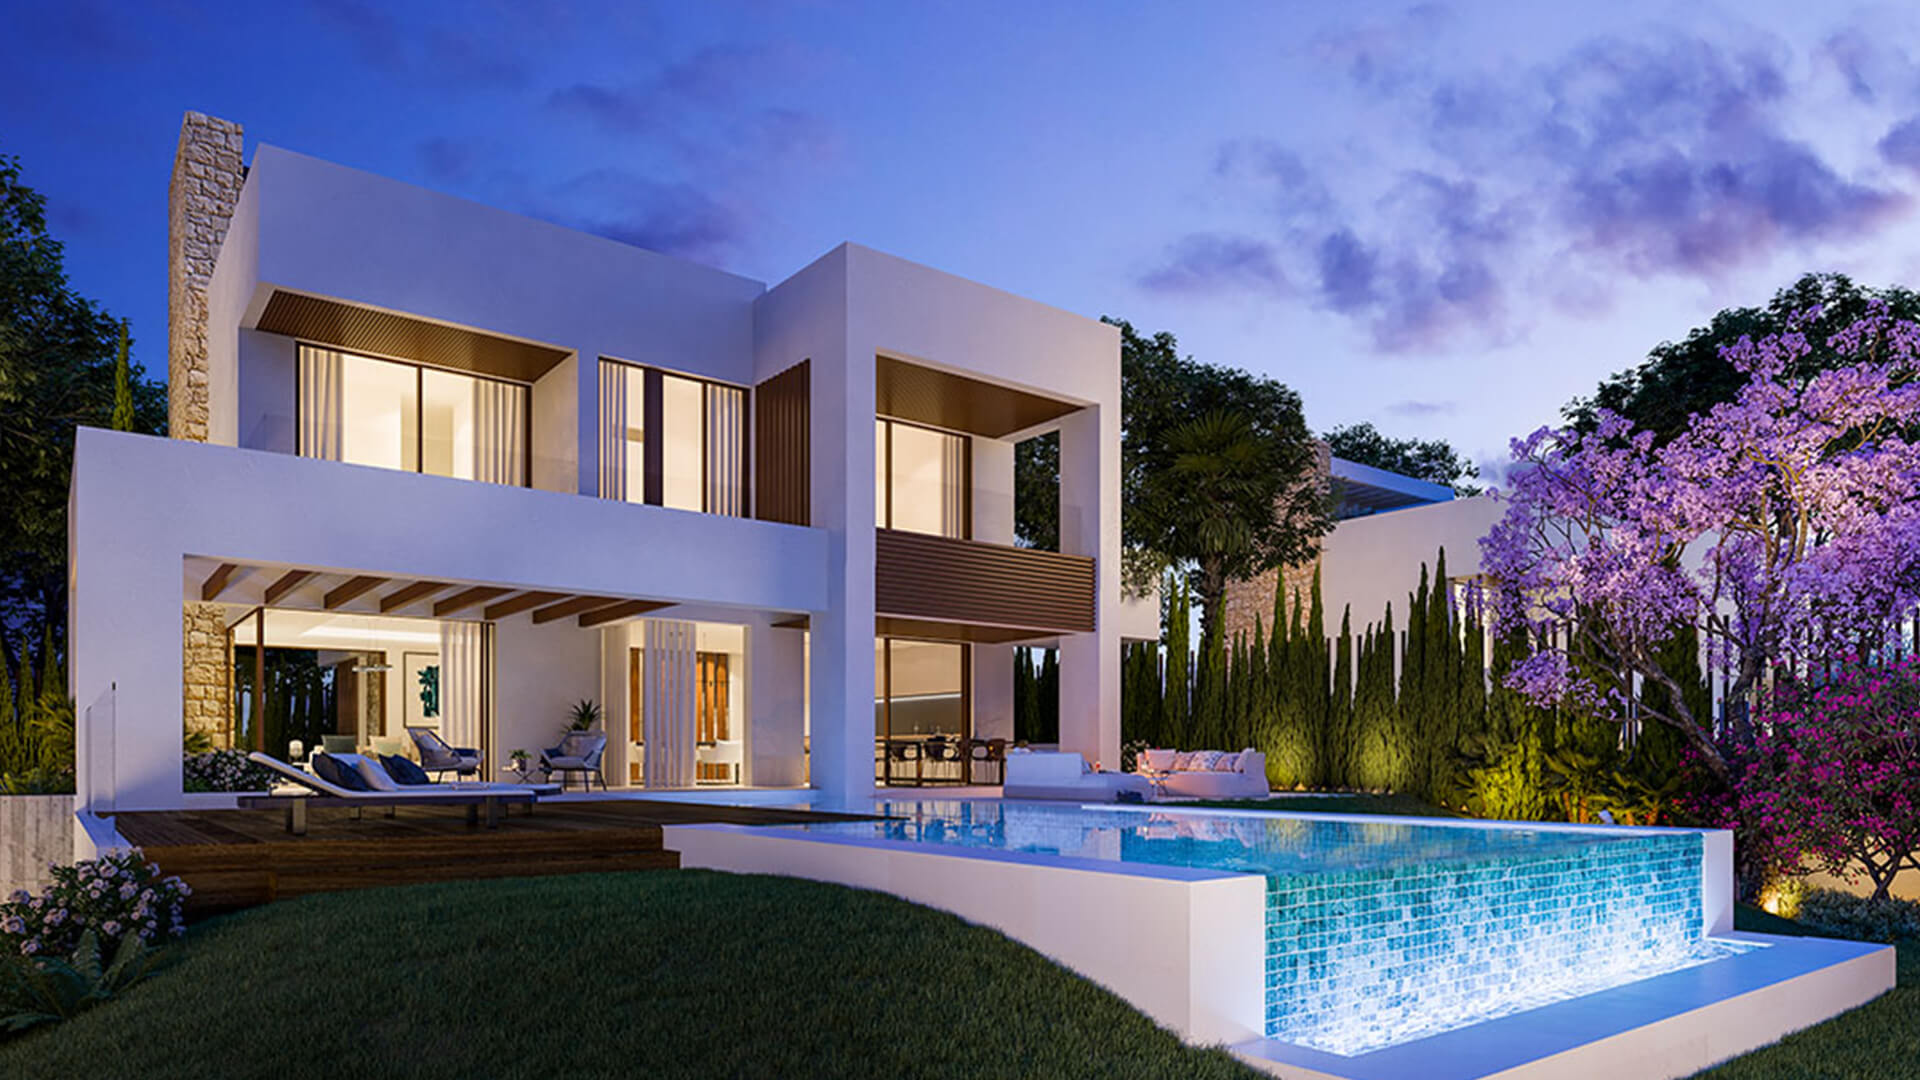 New Build Luxury Homes in Marbella